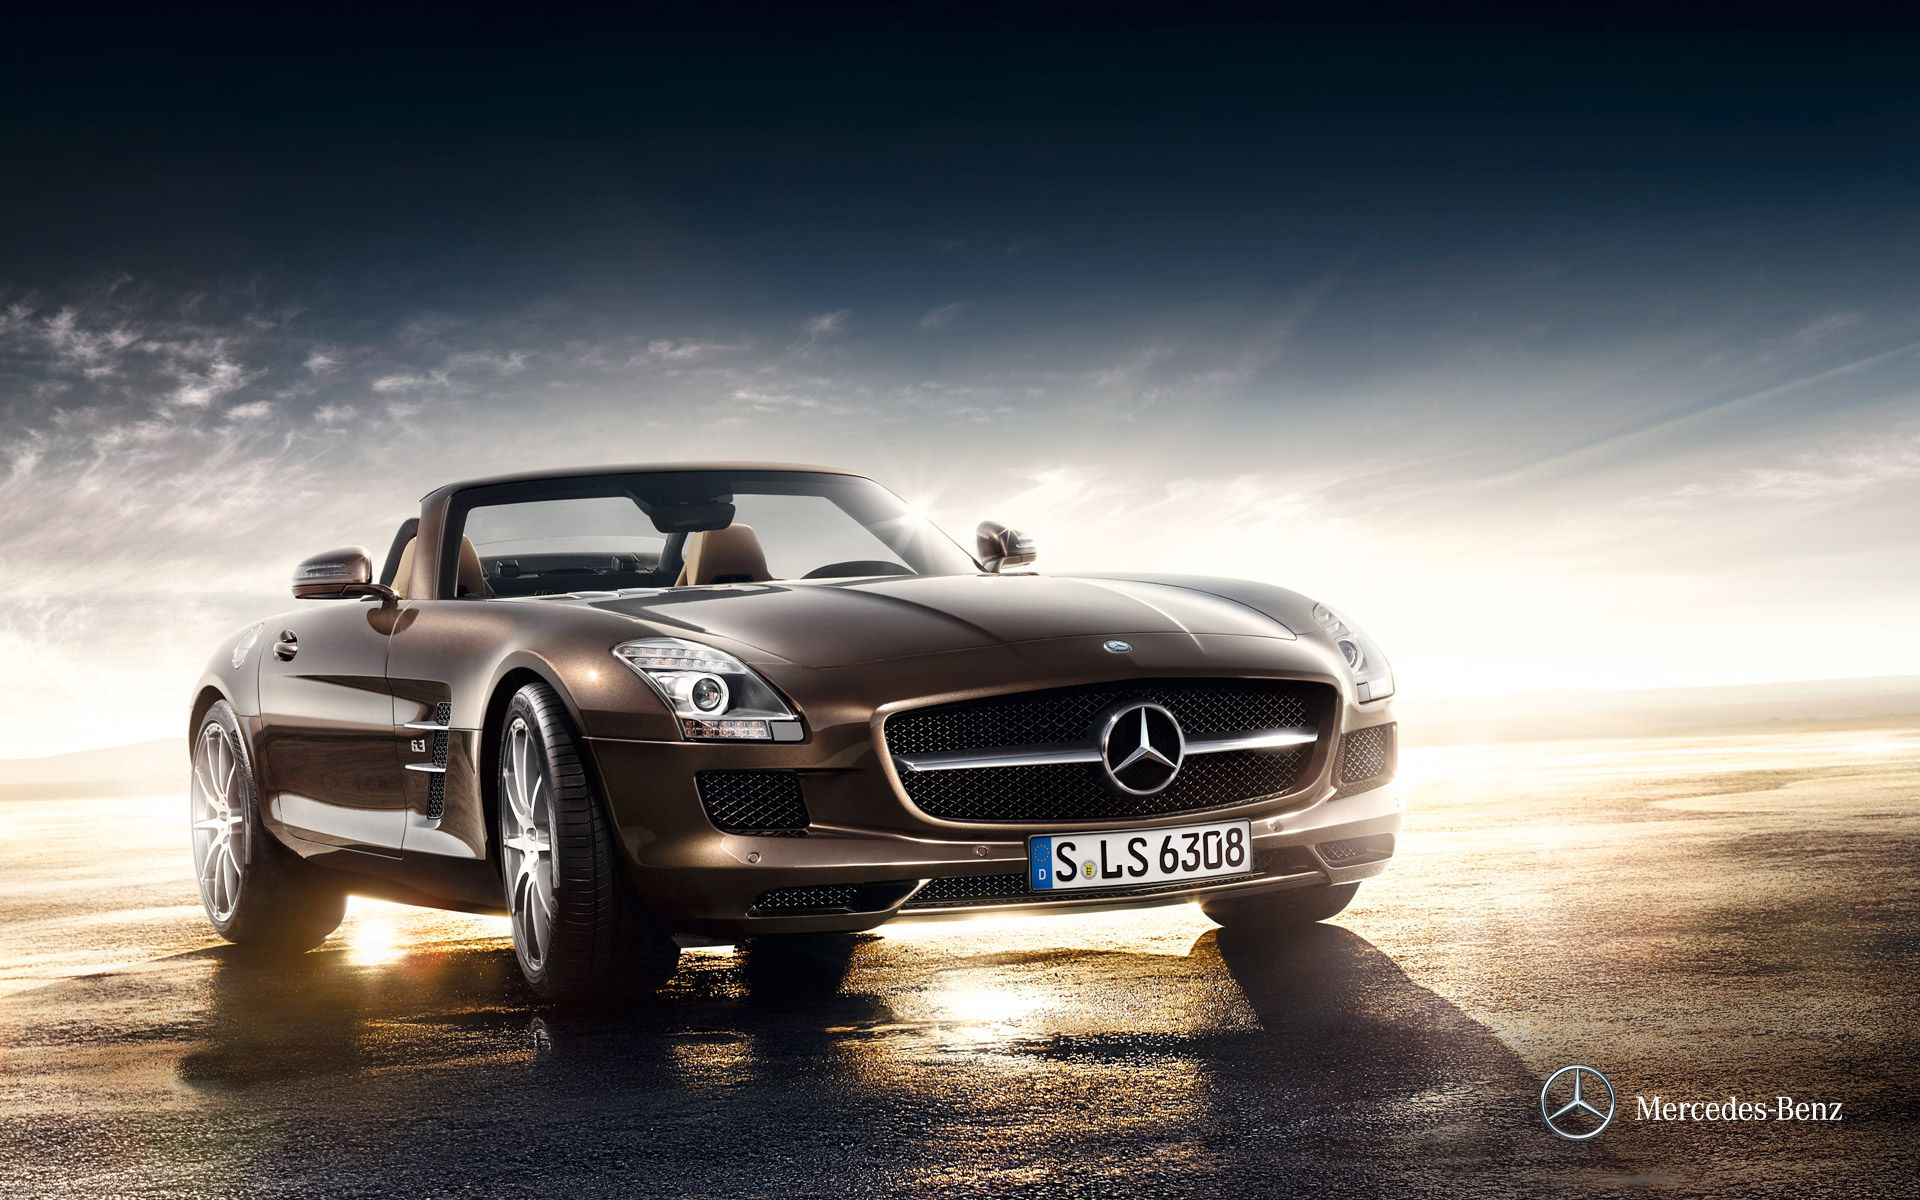 Mercedes Benz Sls Amg Roadster Wallpaper Though Its Sheetmetal